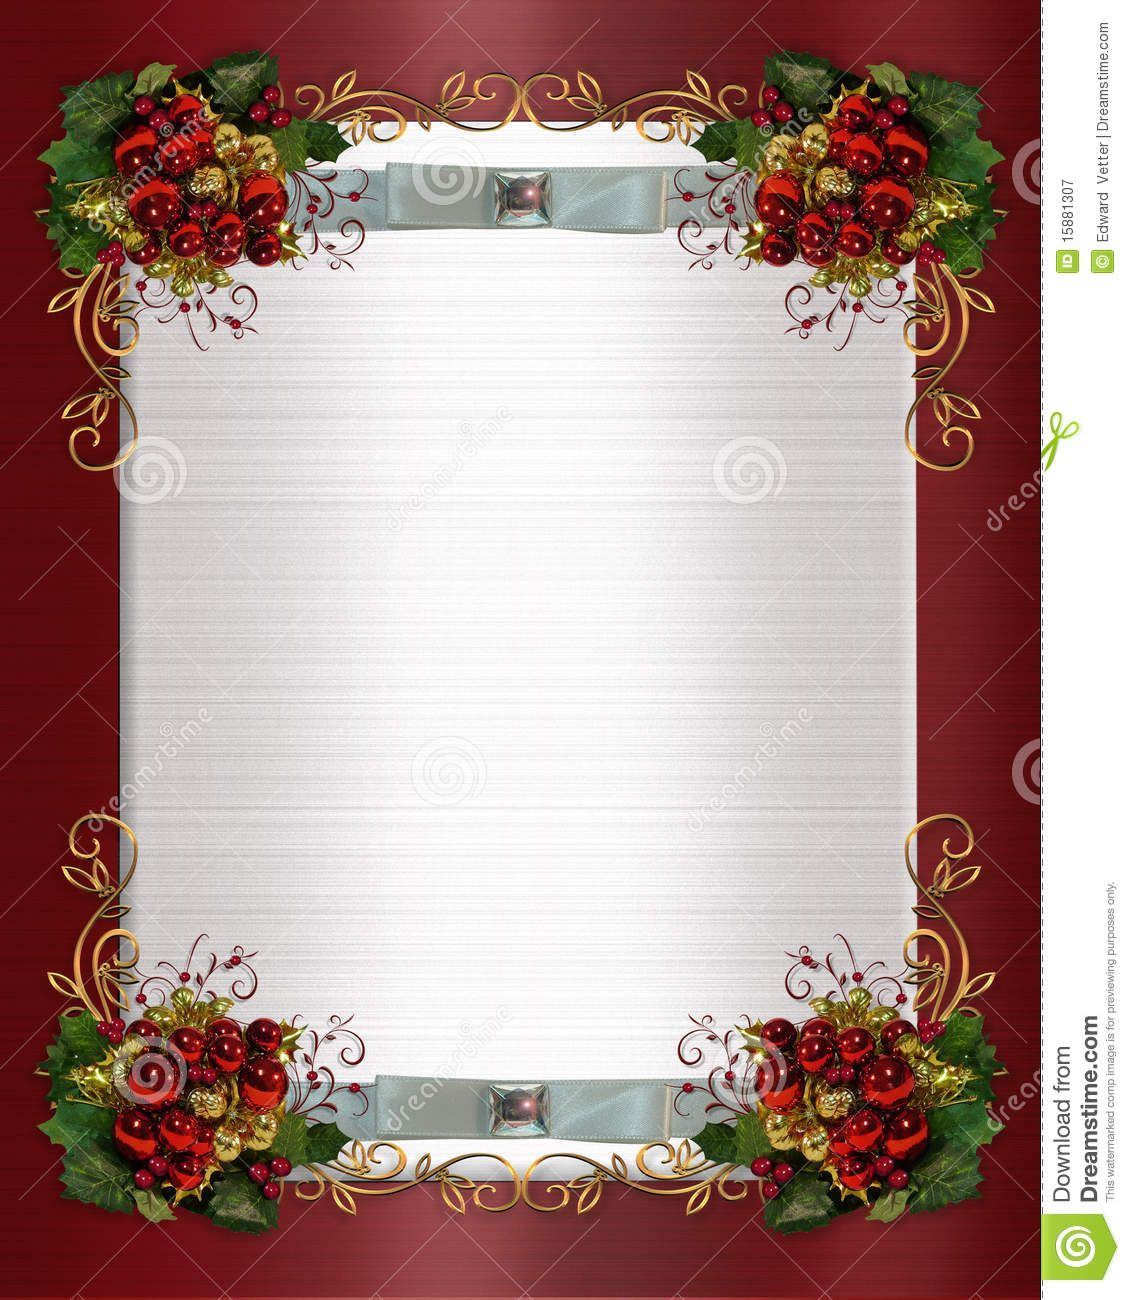 Christmas Or Winter Wedding Border Royalty Free Stock Photography. Templates  FreeInvitation DesignParty ...  Free Invitation Design Templates